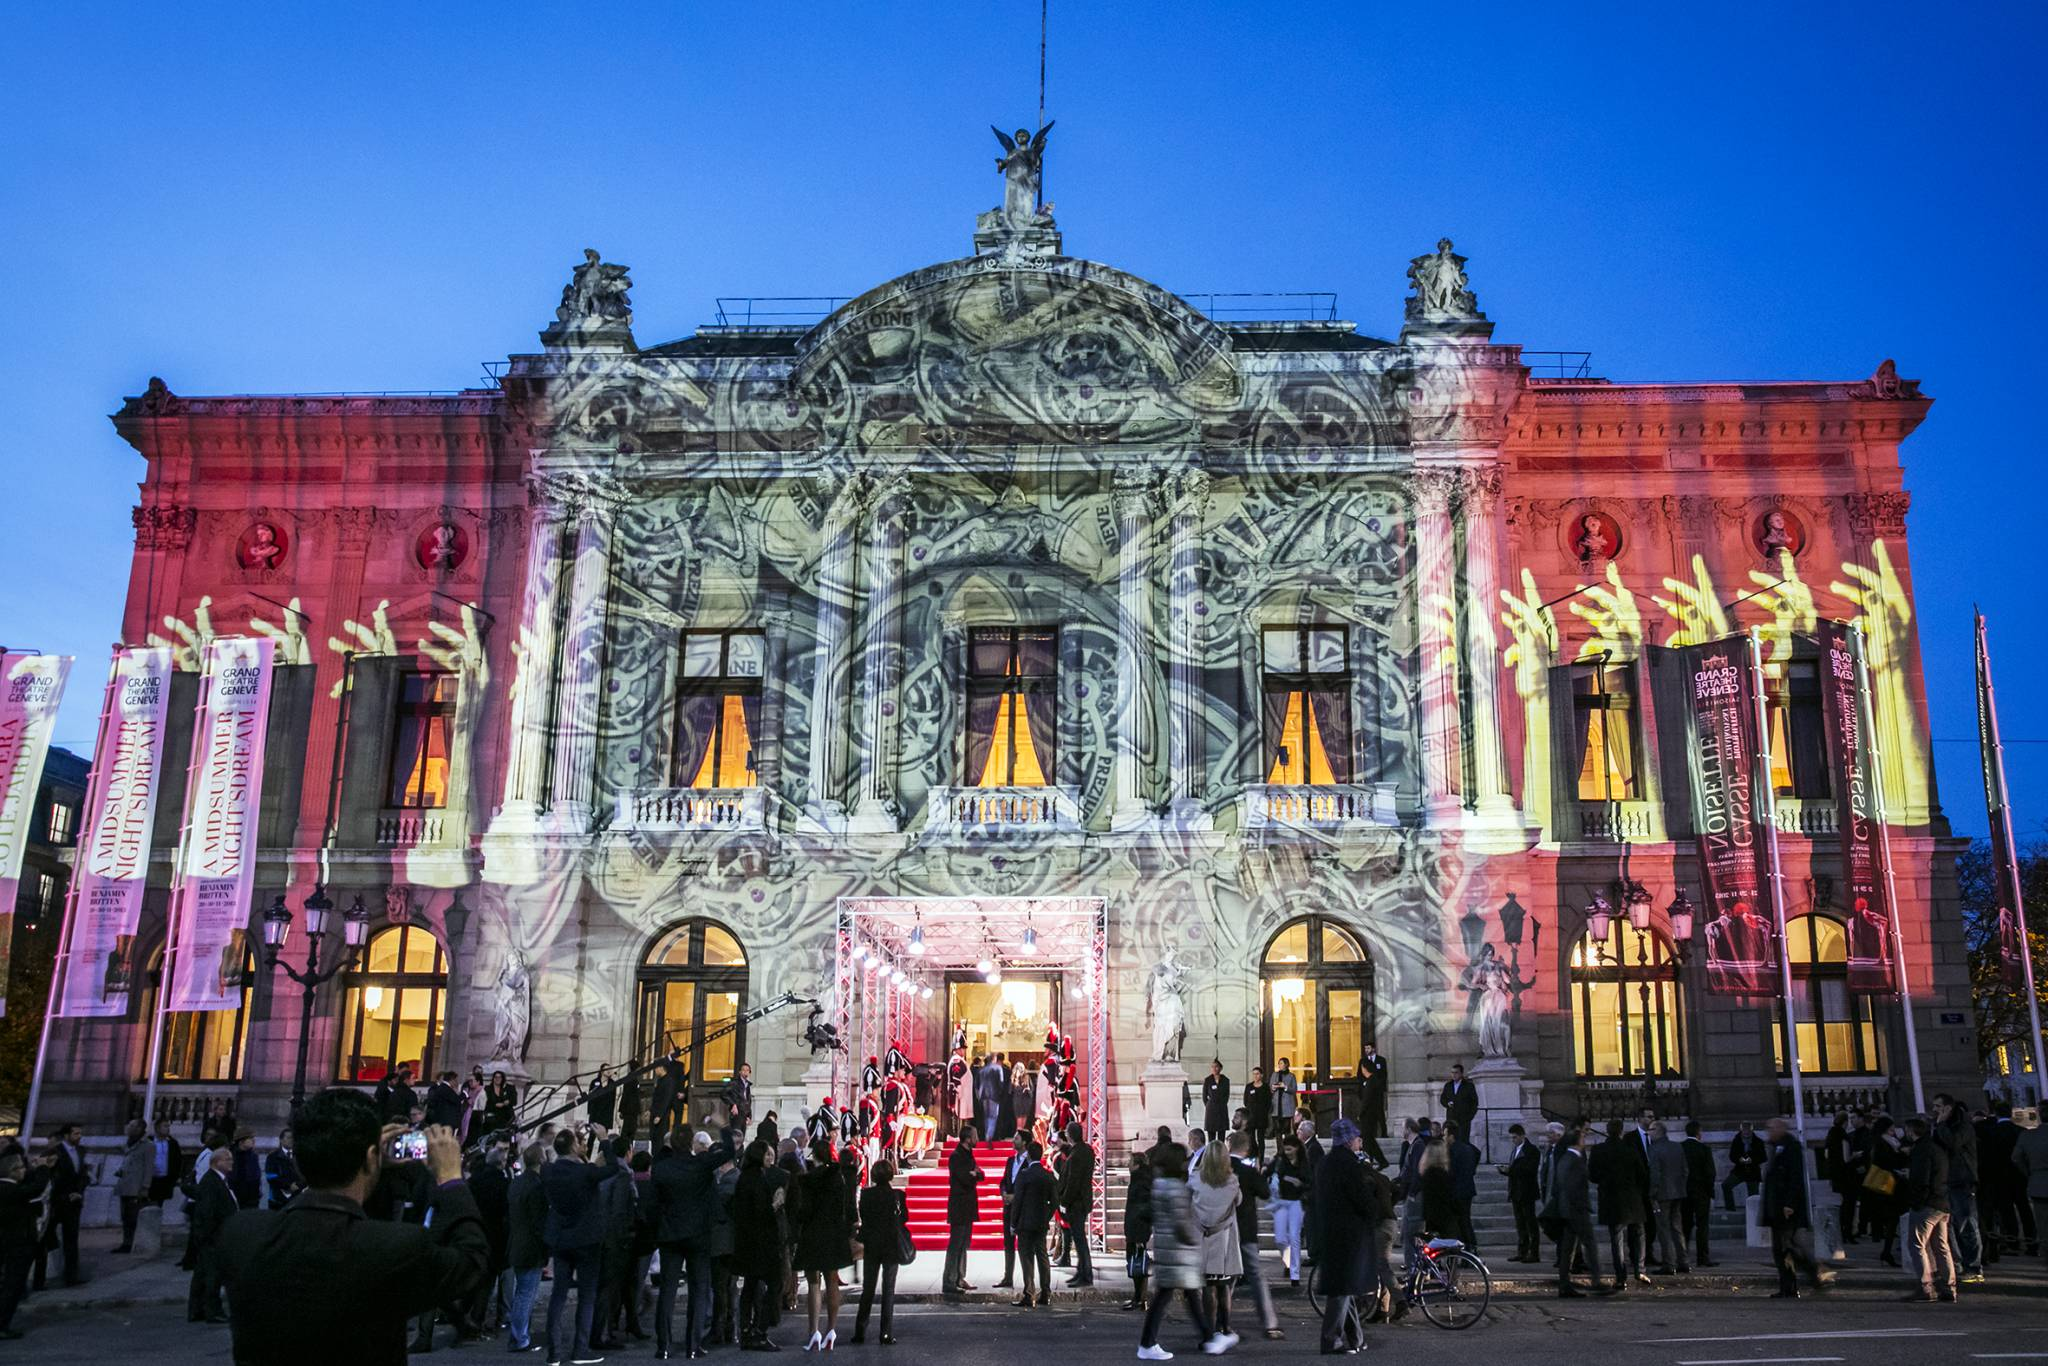 The Grand Théâtre de Genève lit up by Gerry Hofstetter.